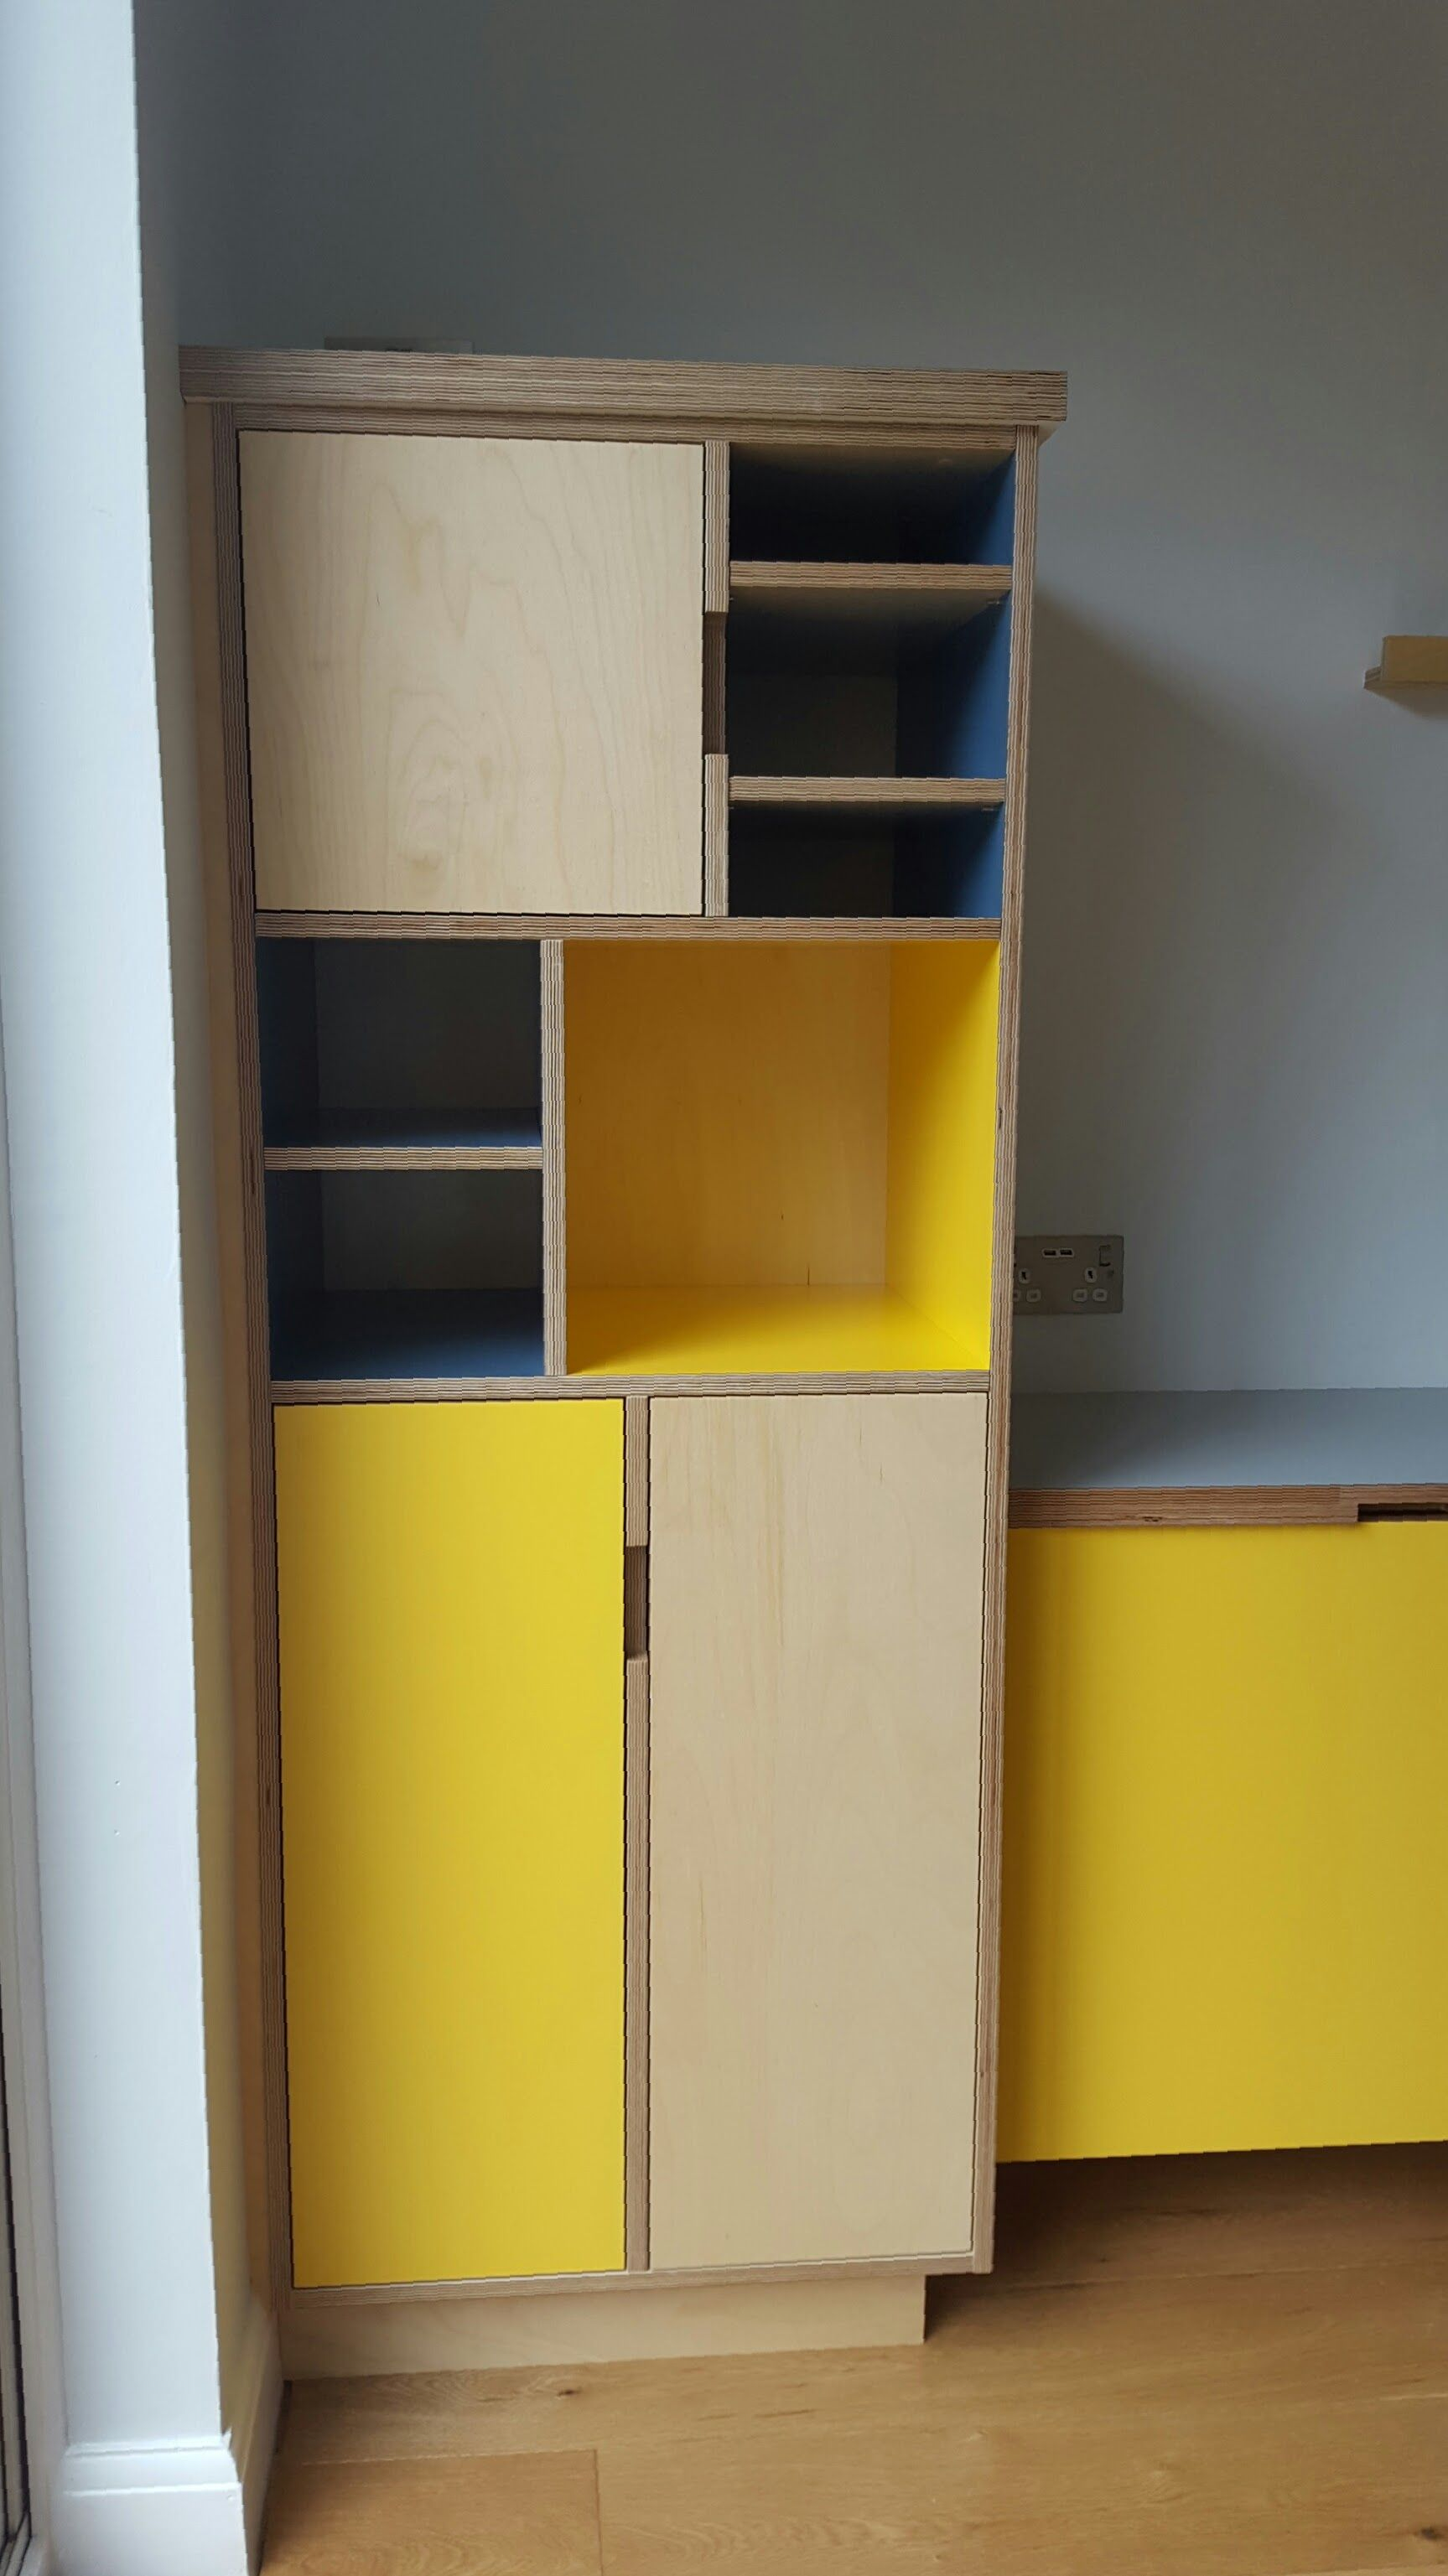 Plywood Door Designs For Rooms New Plywood Cupboards With Laminate Covered Doors